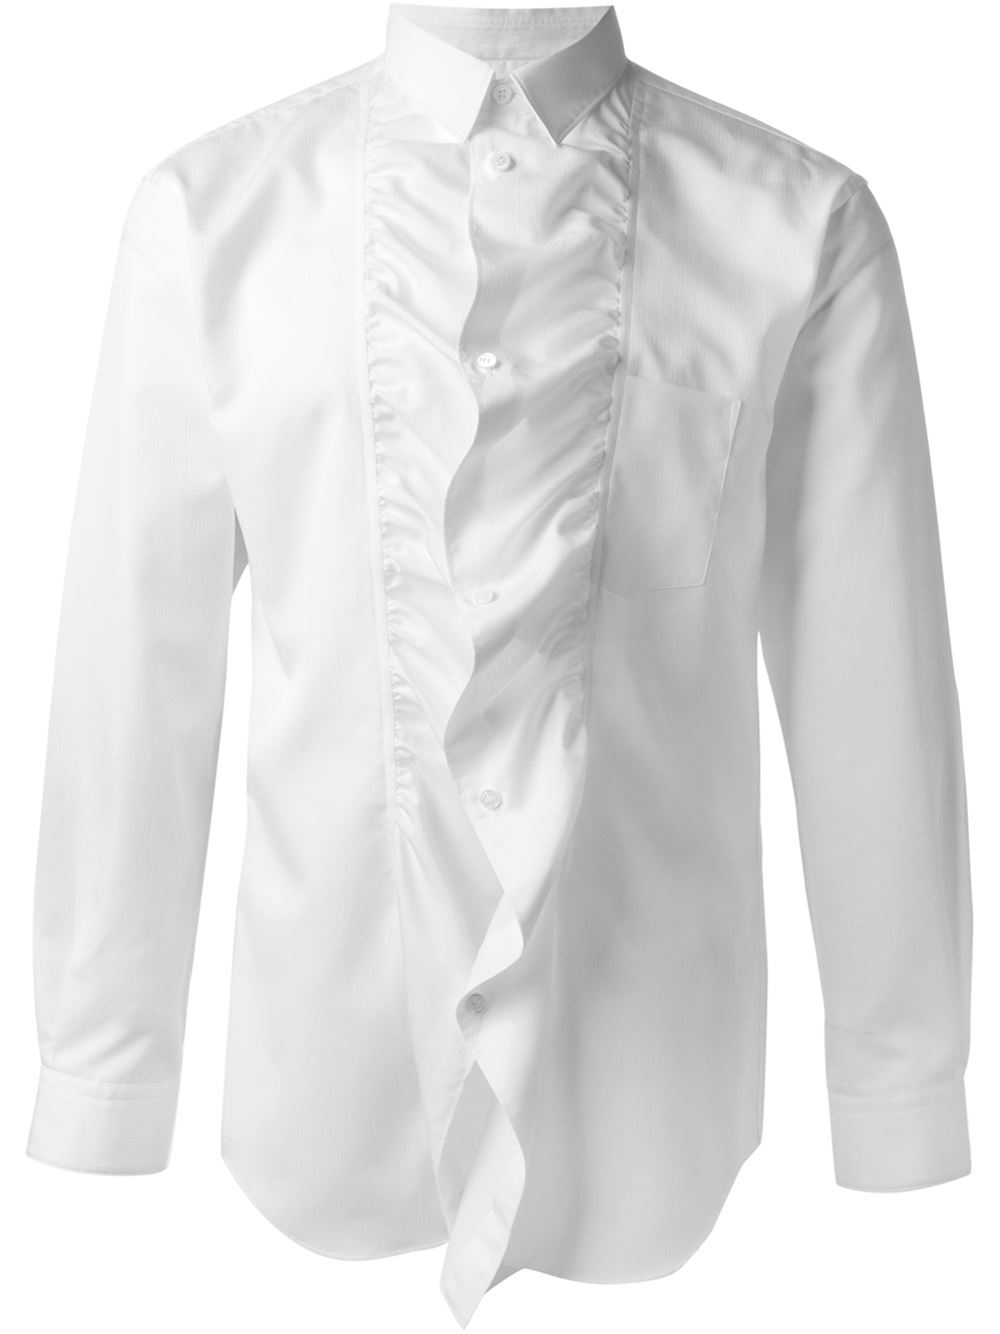 lyst comme des gar ons ruffled shirt in white for men. Black Bedroom Furniture Sets. Home Design Ideas